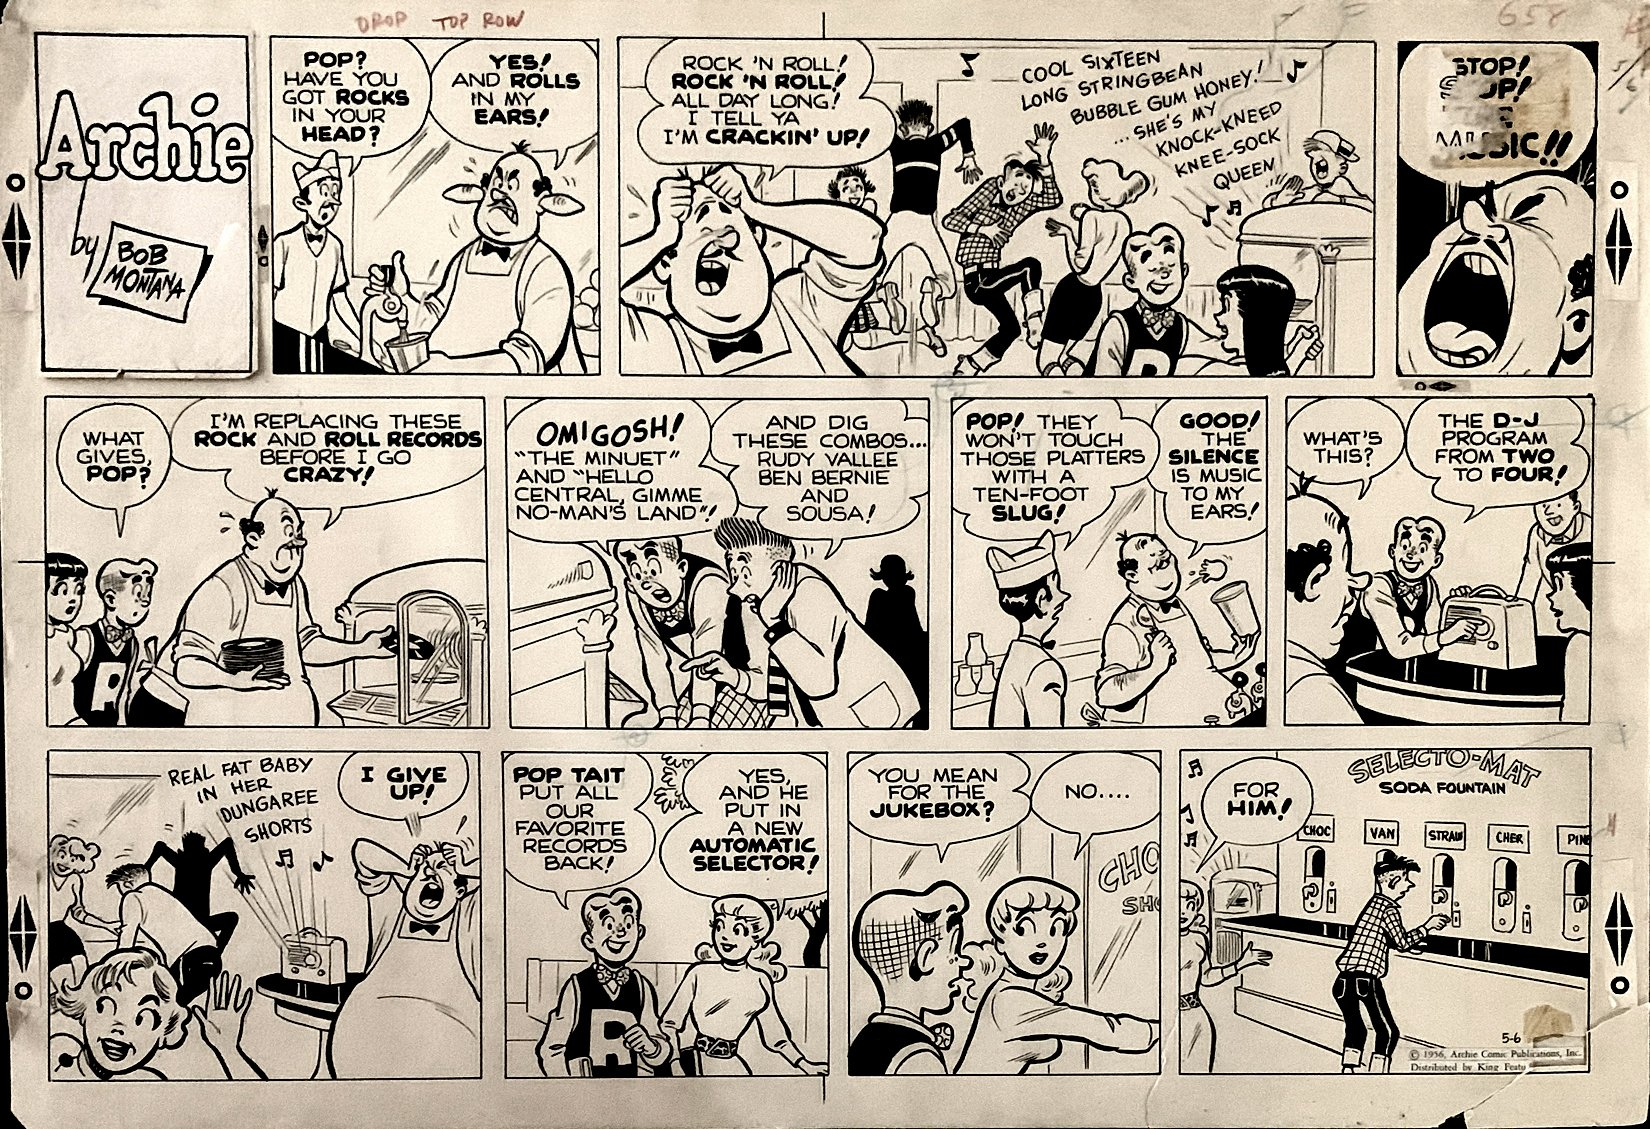 Archie Sunday Strip 5-6-1956 (POSSIBLY THE EARLIEST MENTION OF THE TERM 'ROCK AND ROLL' IN A COMIC STRIP!